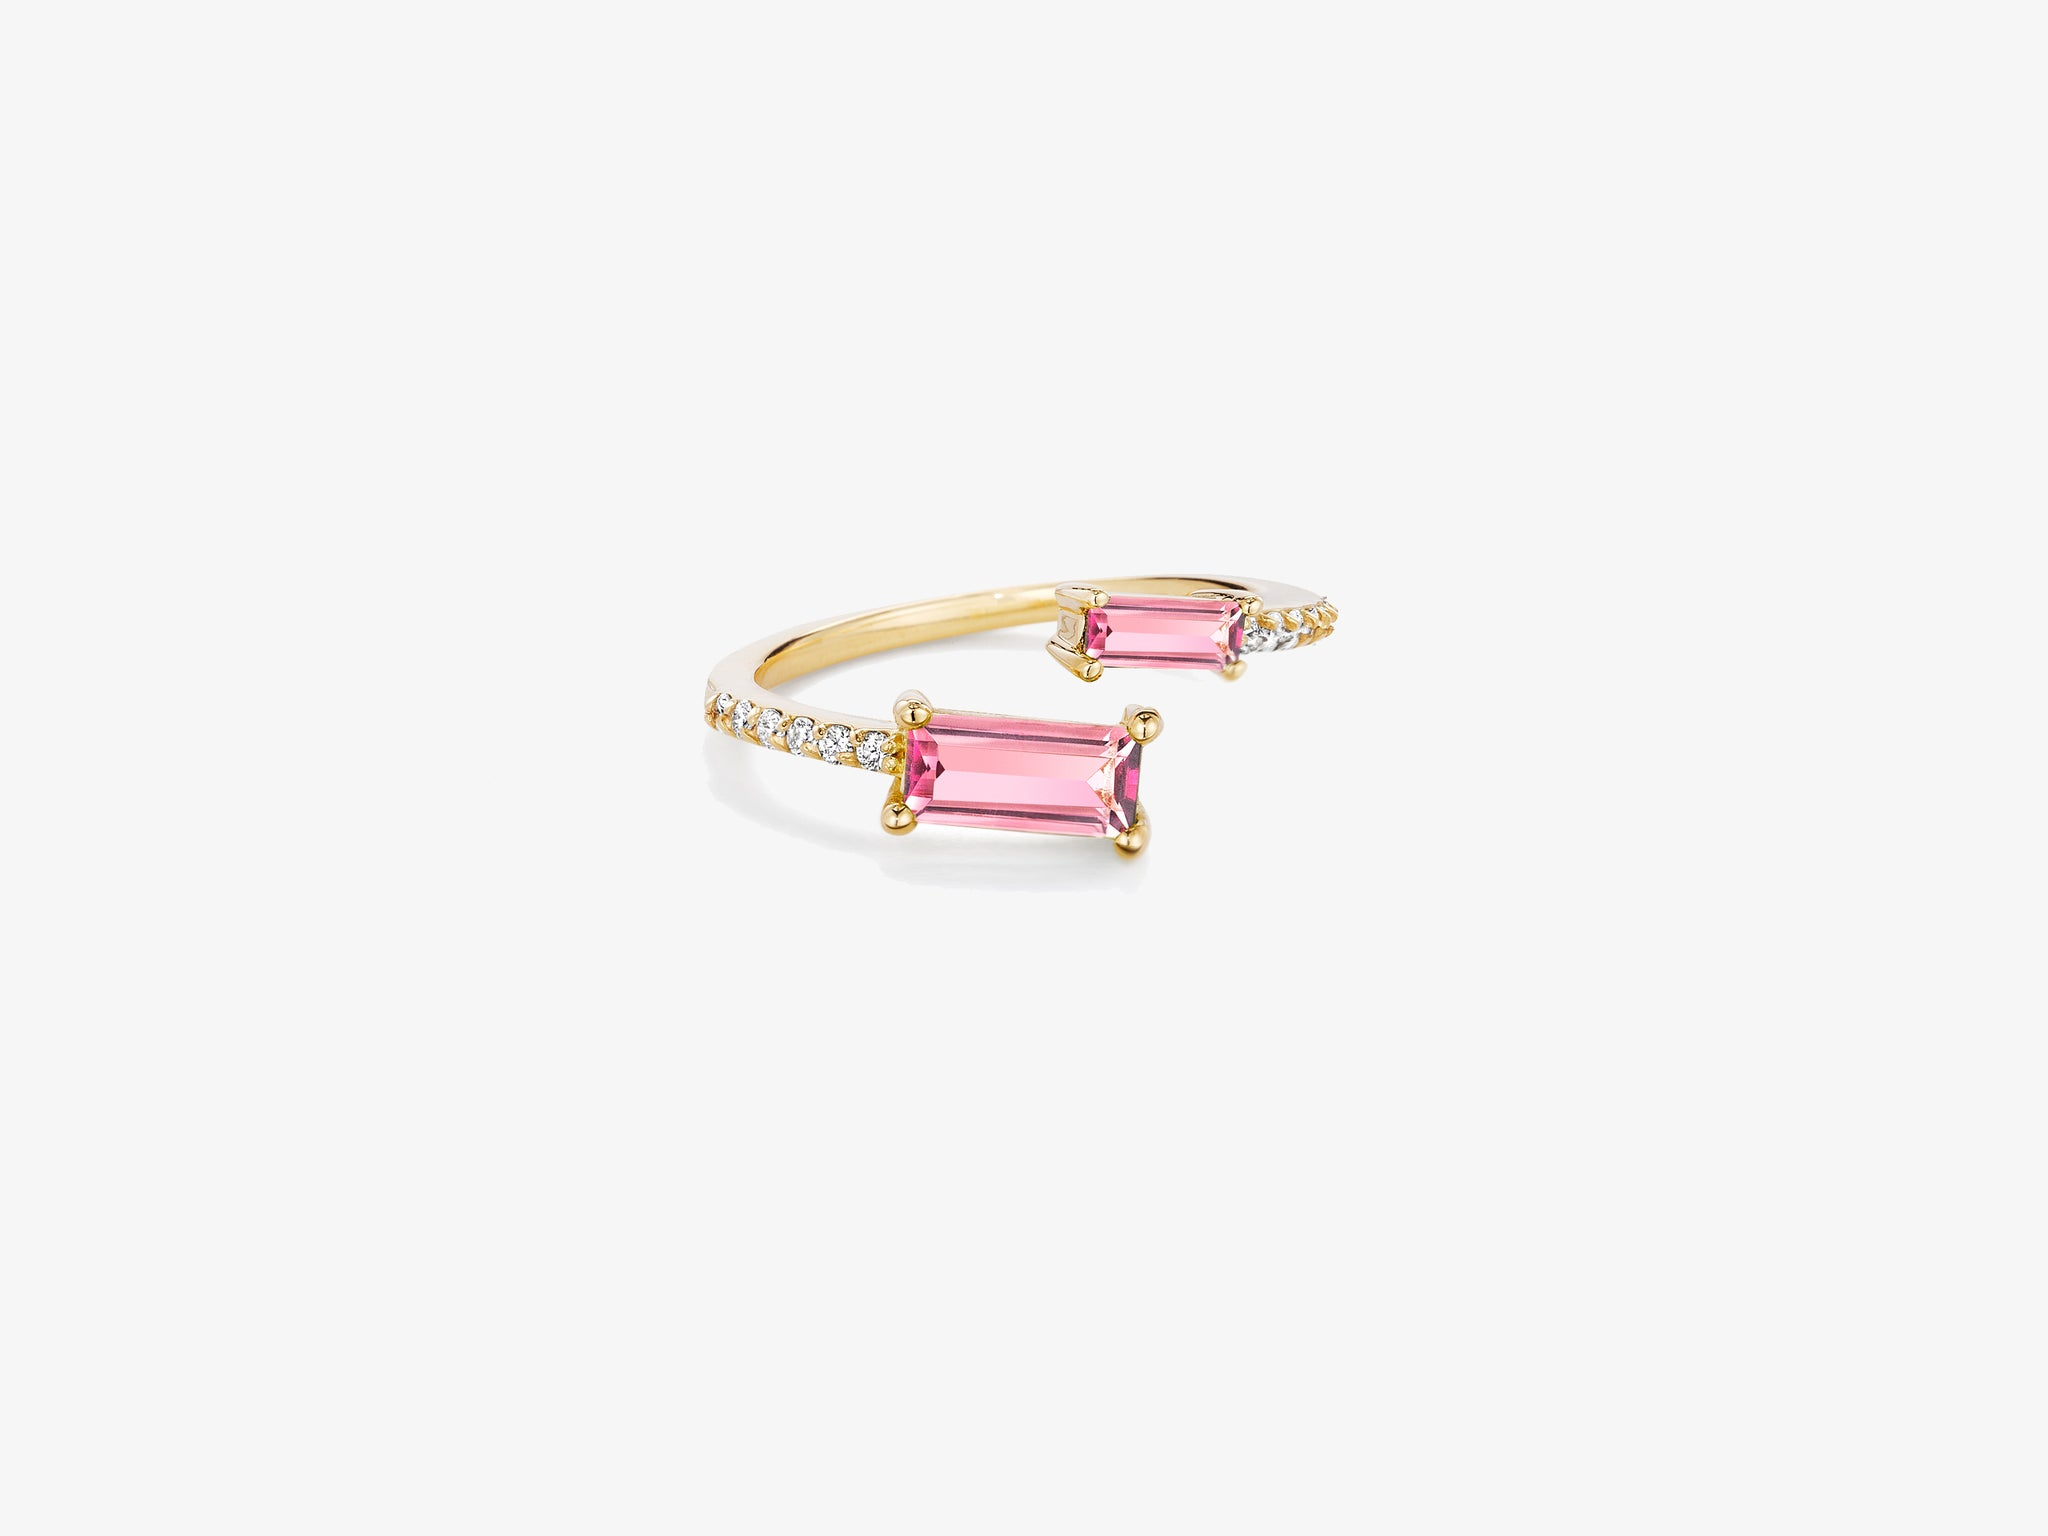 Asymmetrical Diamond Pave Ring with Two Baguette Gemstone Detail